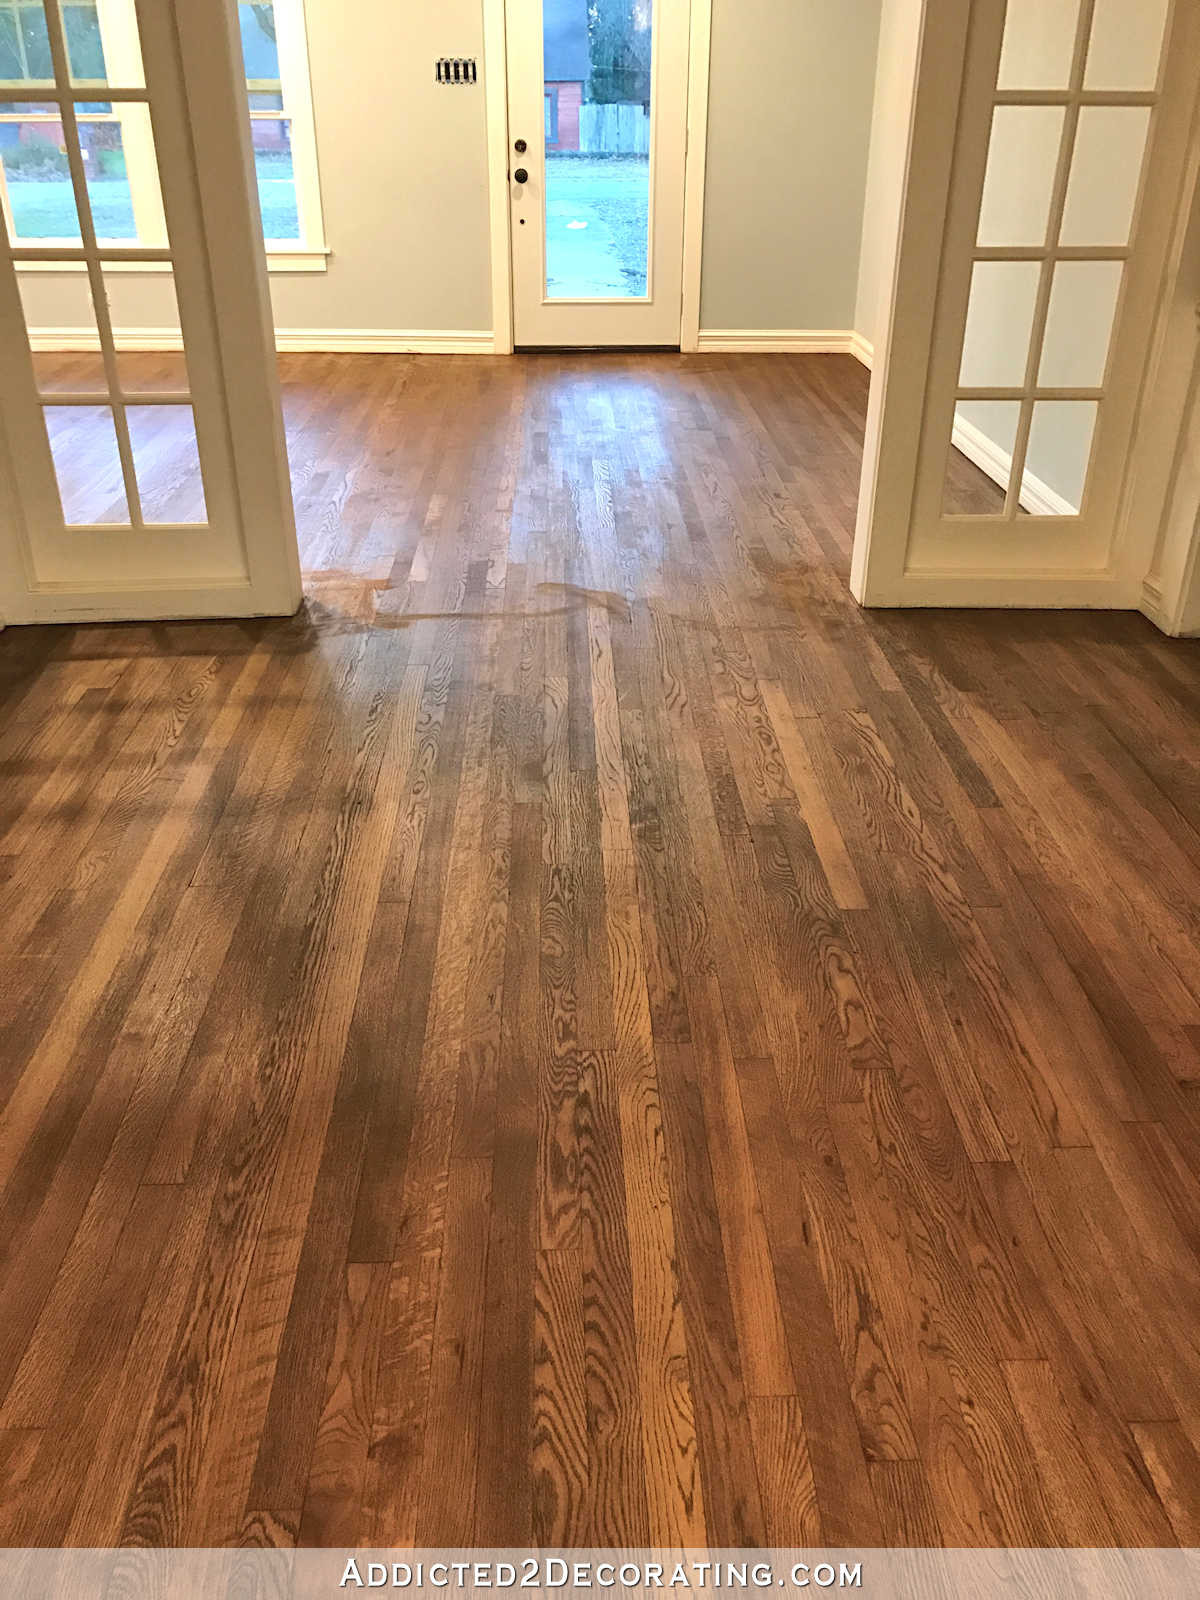 Grey Hardwood Floor Colors Of Adventures In Staining My Red Oak Hardwood Floors Products Process In Staining Red Oak Hardwood Floors 9 Stain On Entryway and Music Room Floors